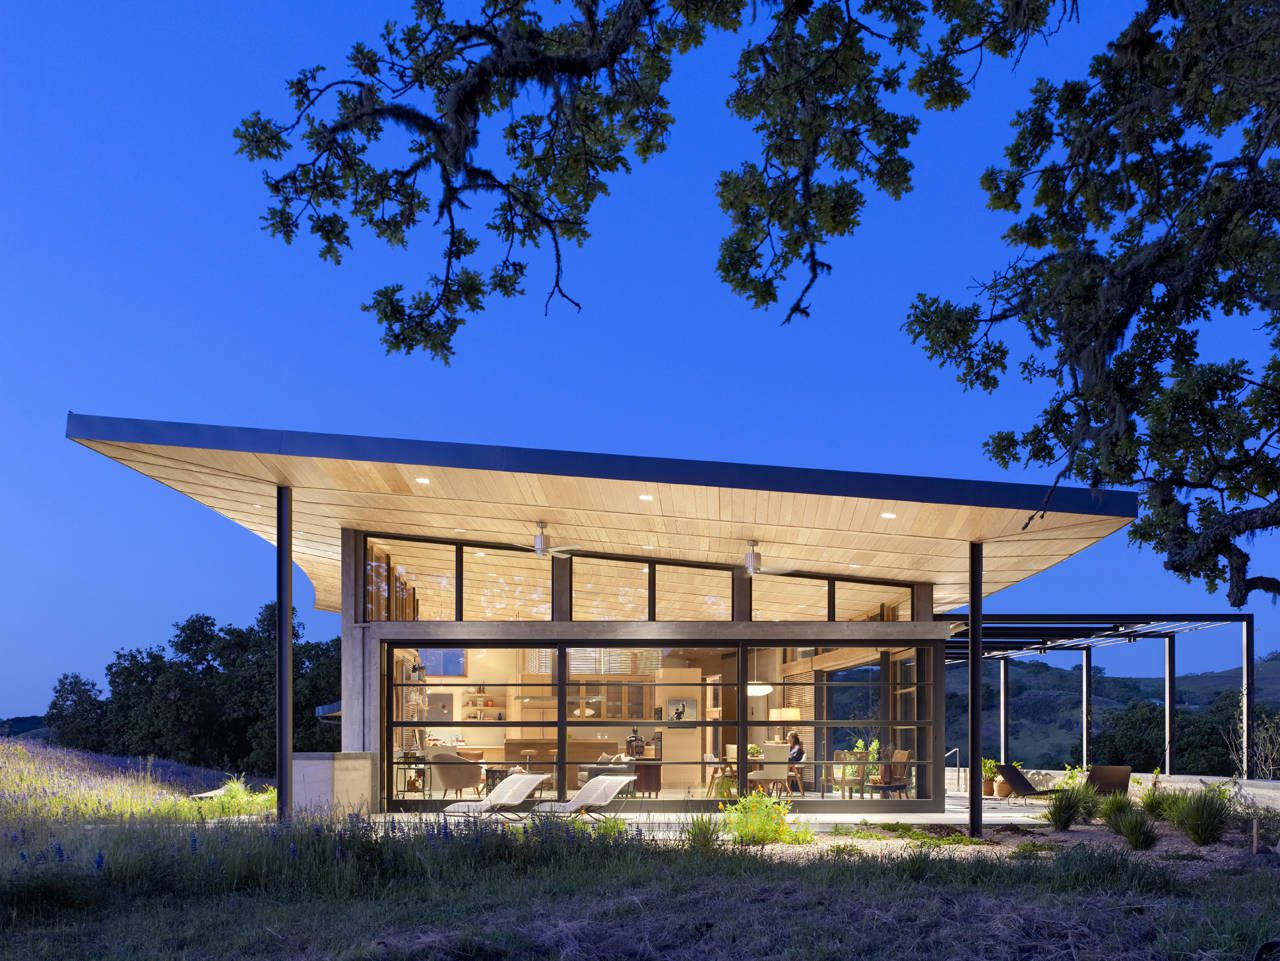 Ca Home Design. View in gallery Amazing Projects That Take Green Architecture To New Heights